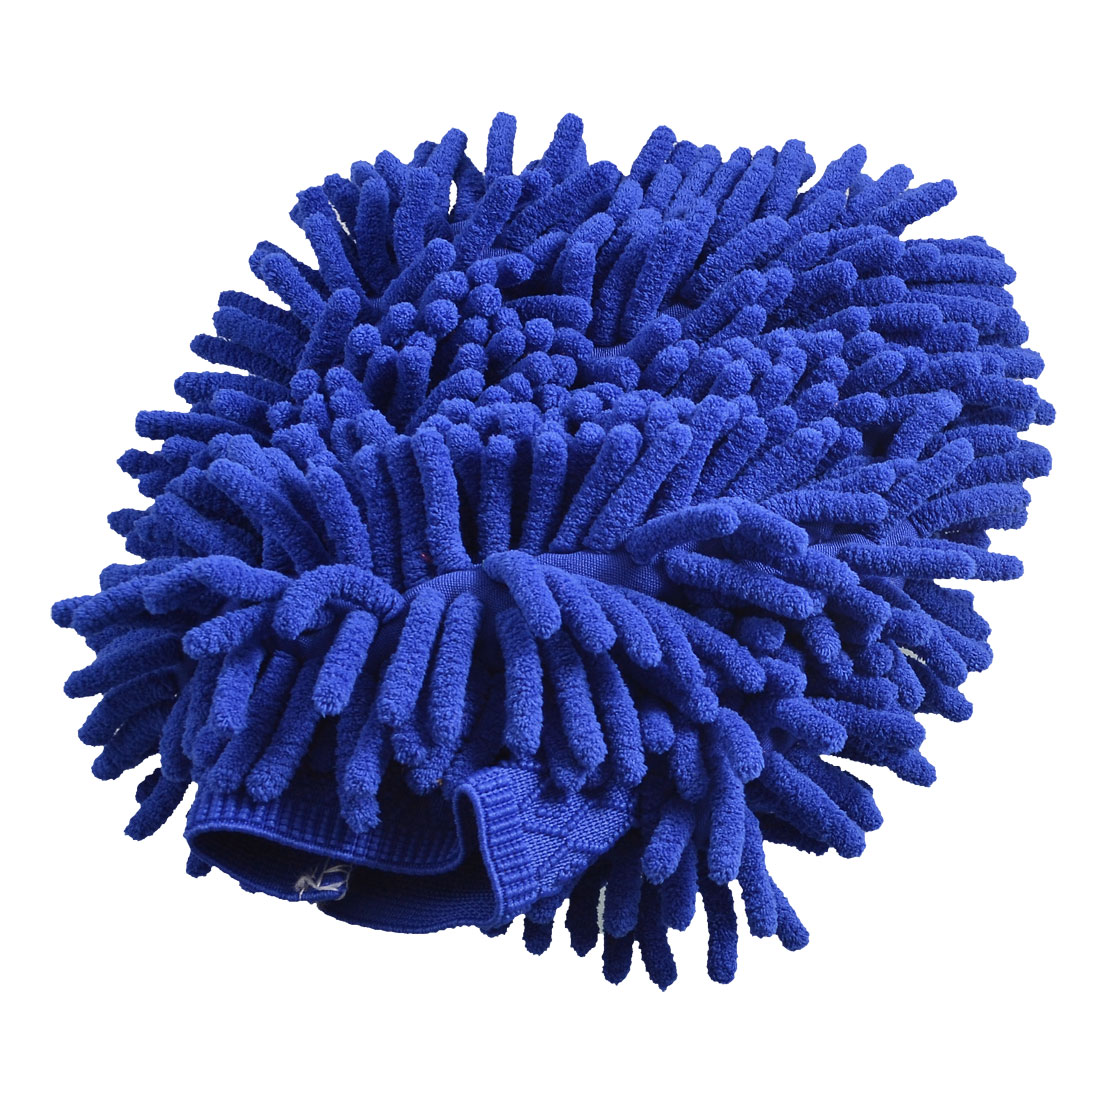 Car Royal Blue Microfiber Chenille Mitten Washing Cleaning Glove 23cm x 15cm